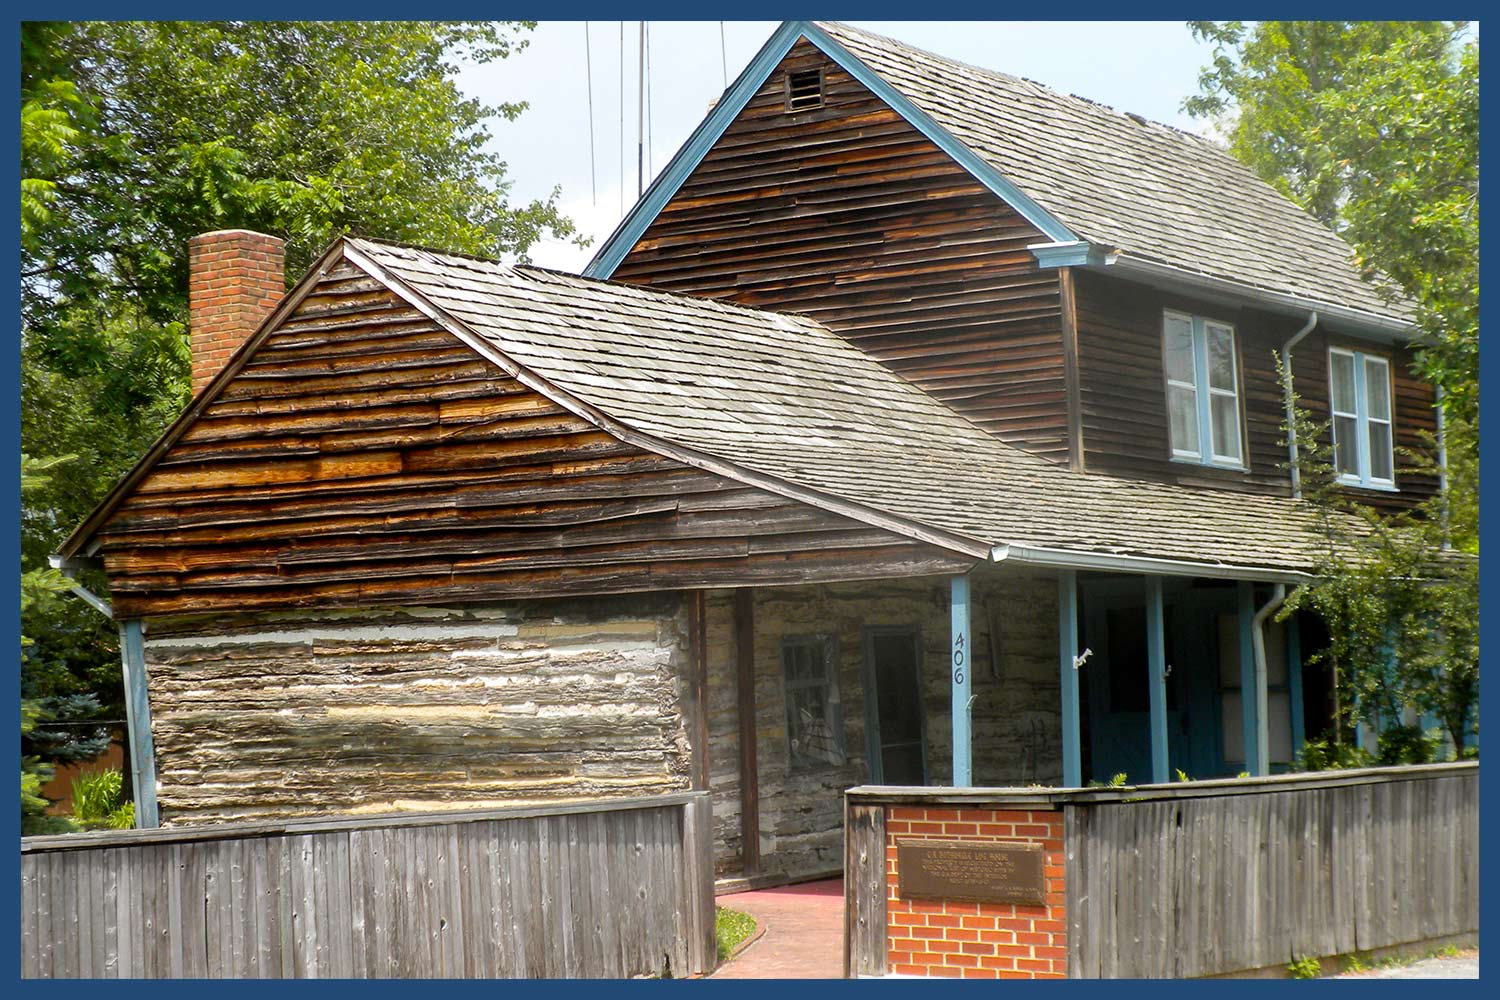 C.A. Nothnagle Log House in New Jersey